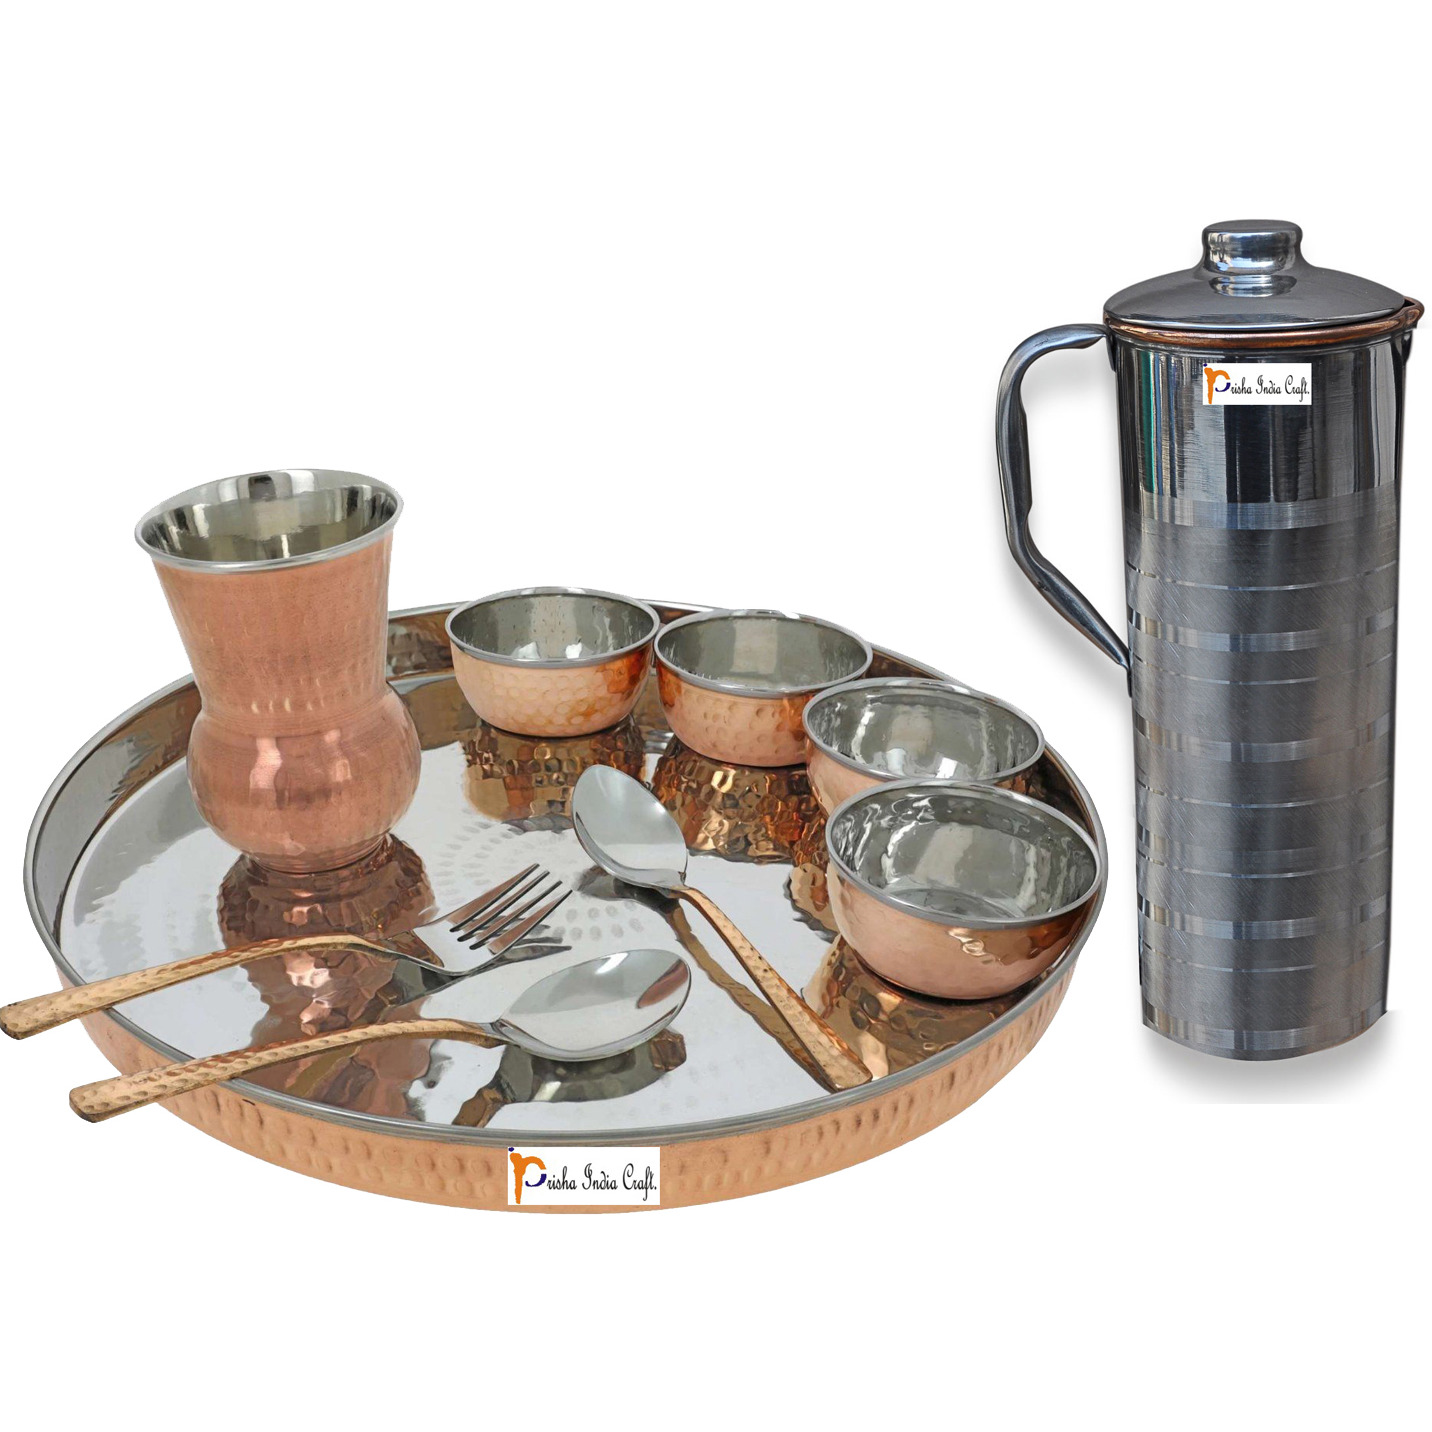 Prisha India Craft B. Dinnerware Traditional Stainless Steel Copper Dinner Set of Thali Plate, Bowls, Glass and Spoons, Dia 13  With 1 Luxury Style Stainless Steel Copper Pitcher Jug - Christmas Gift